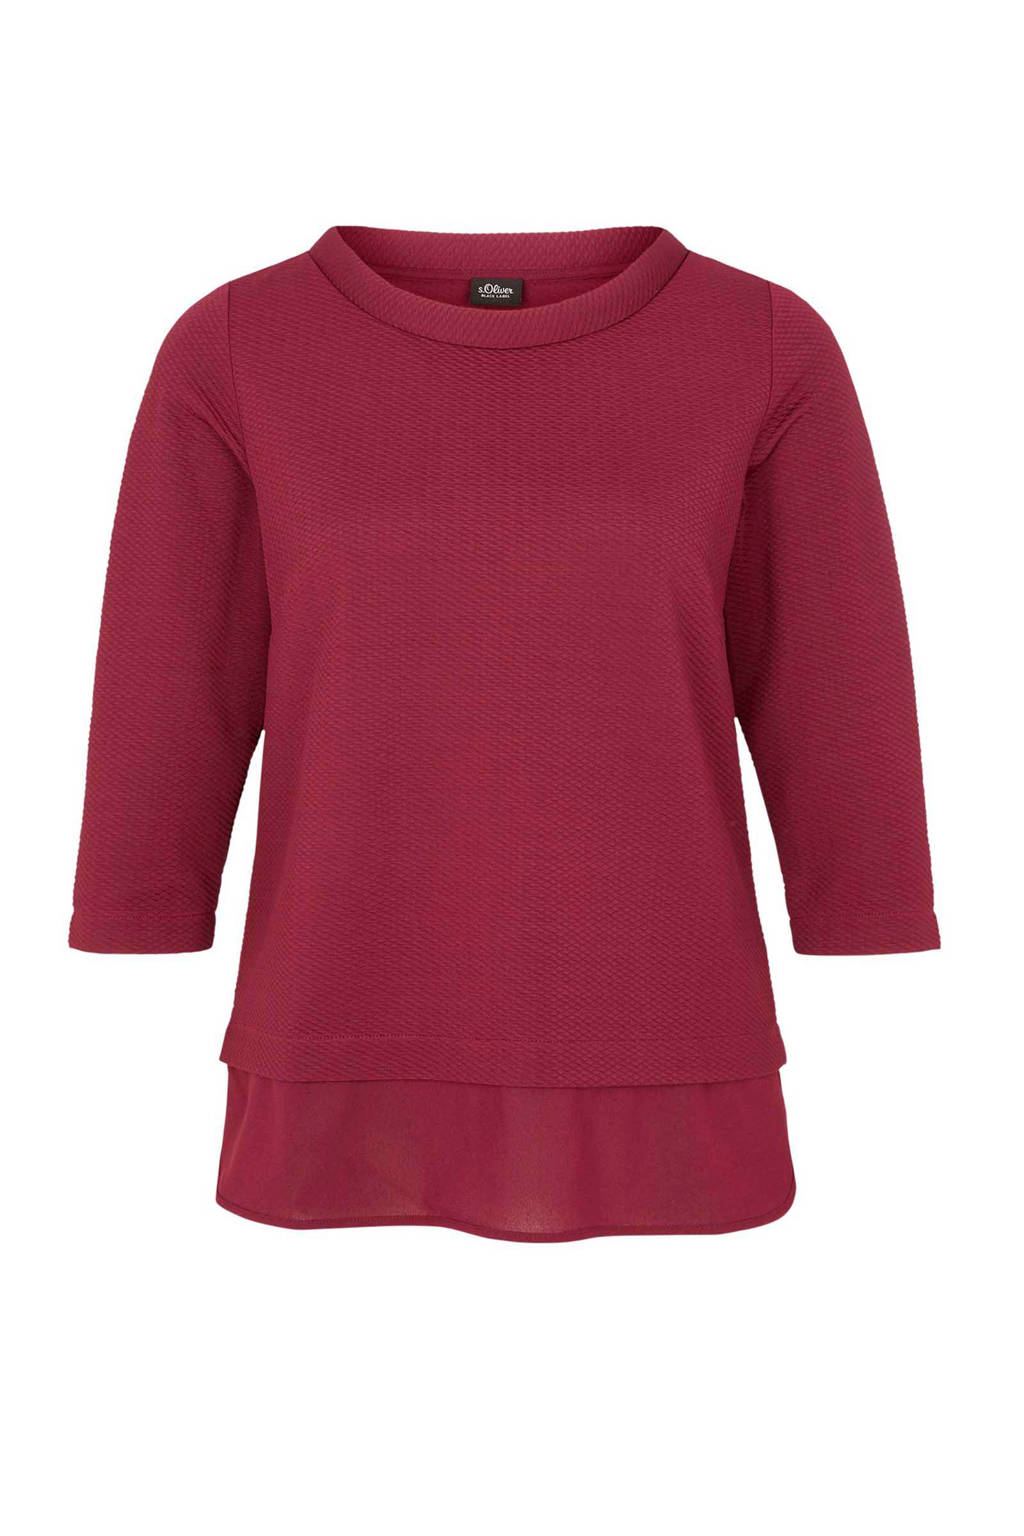 s.Oliver BLACK LABEL T-shirt, Bordeaux